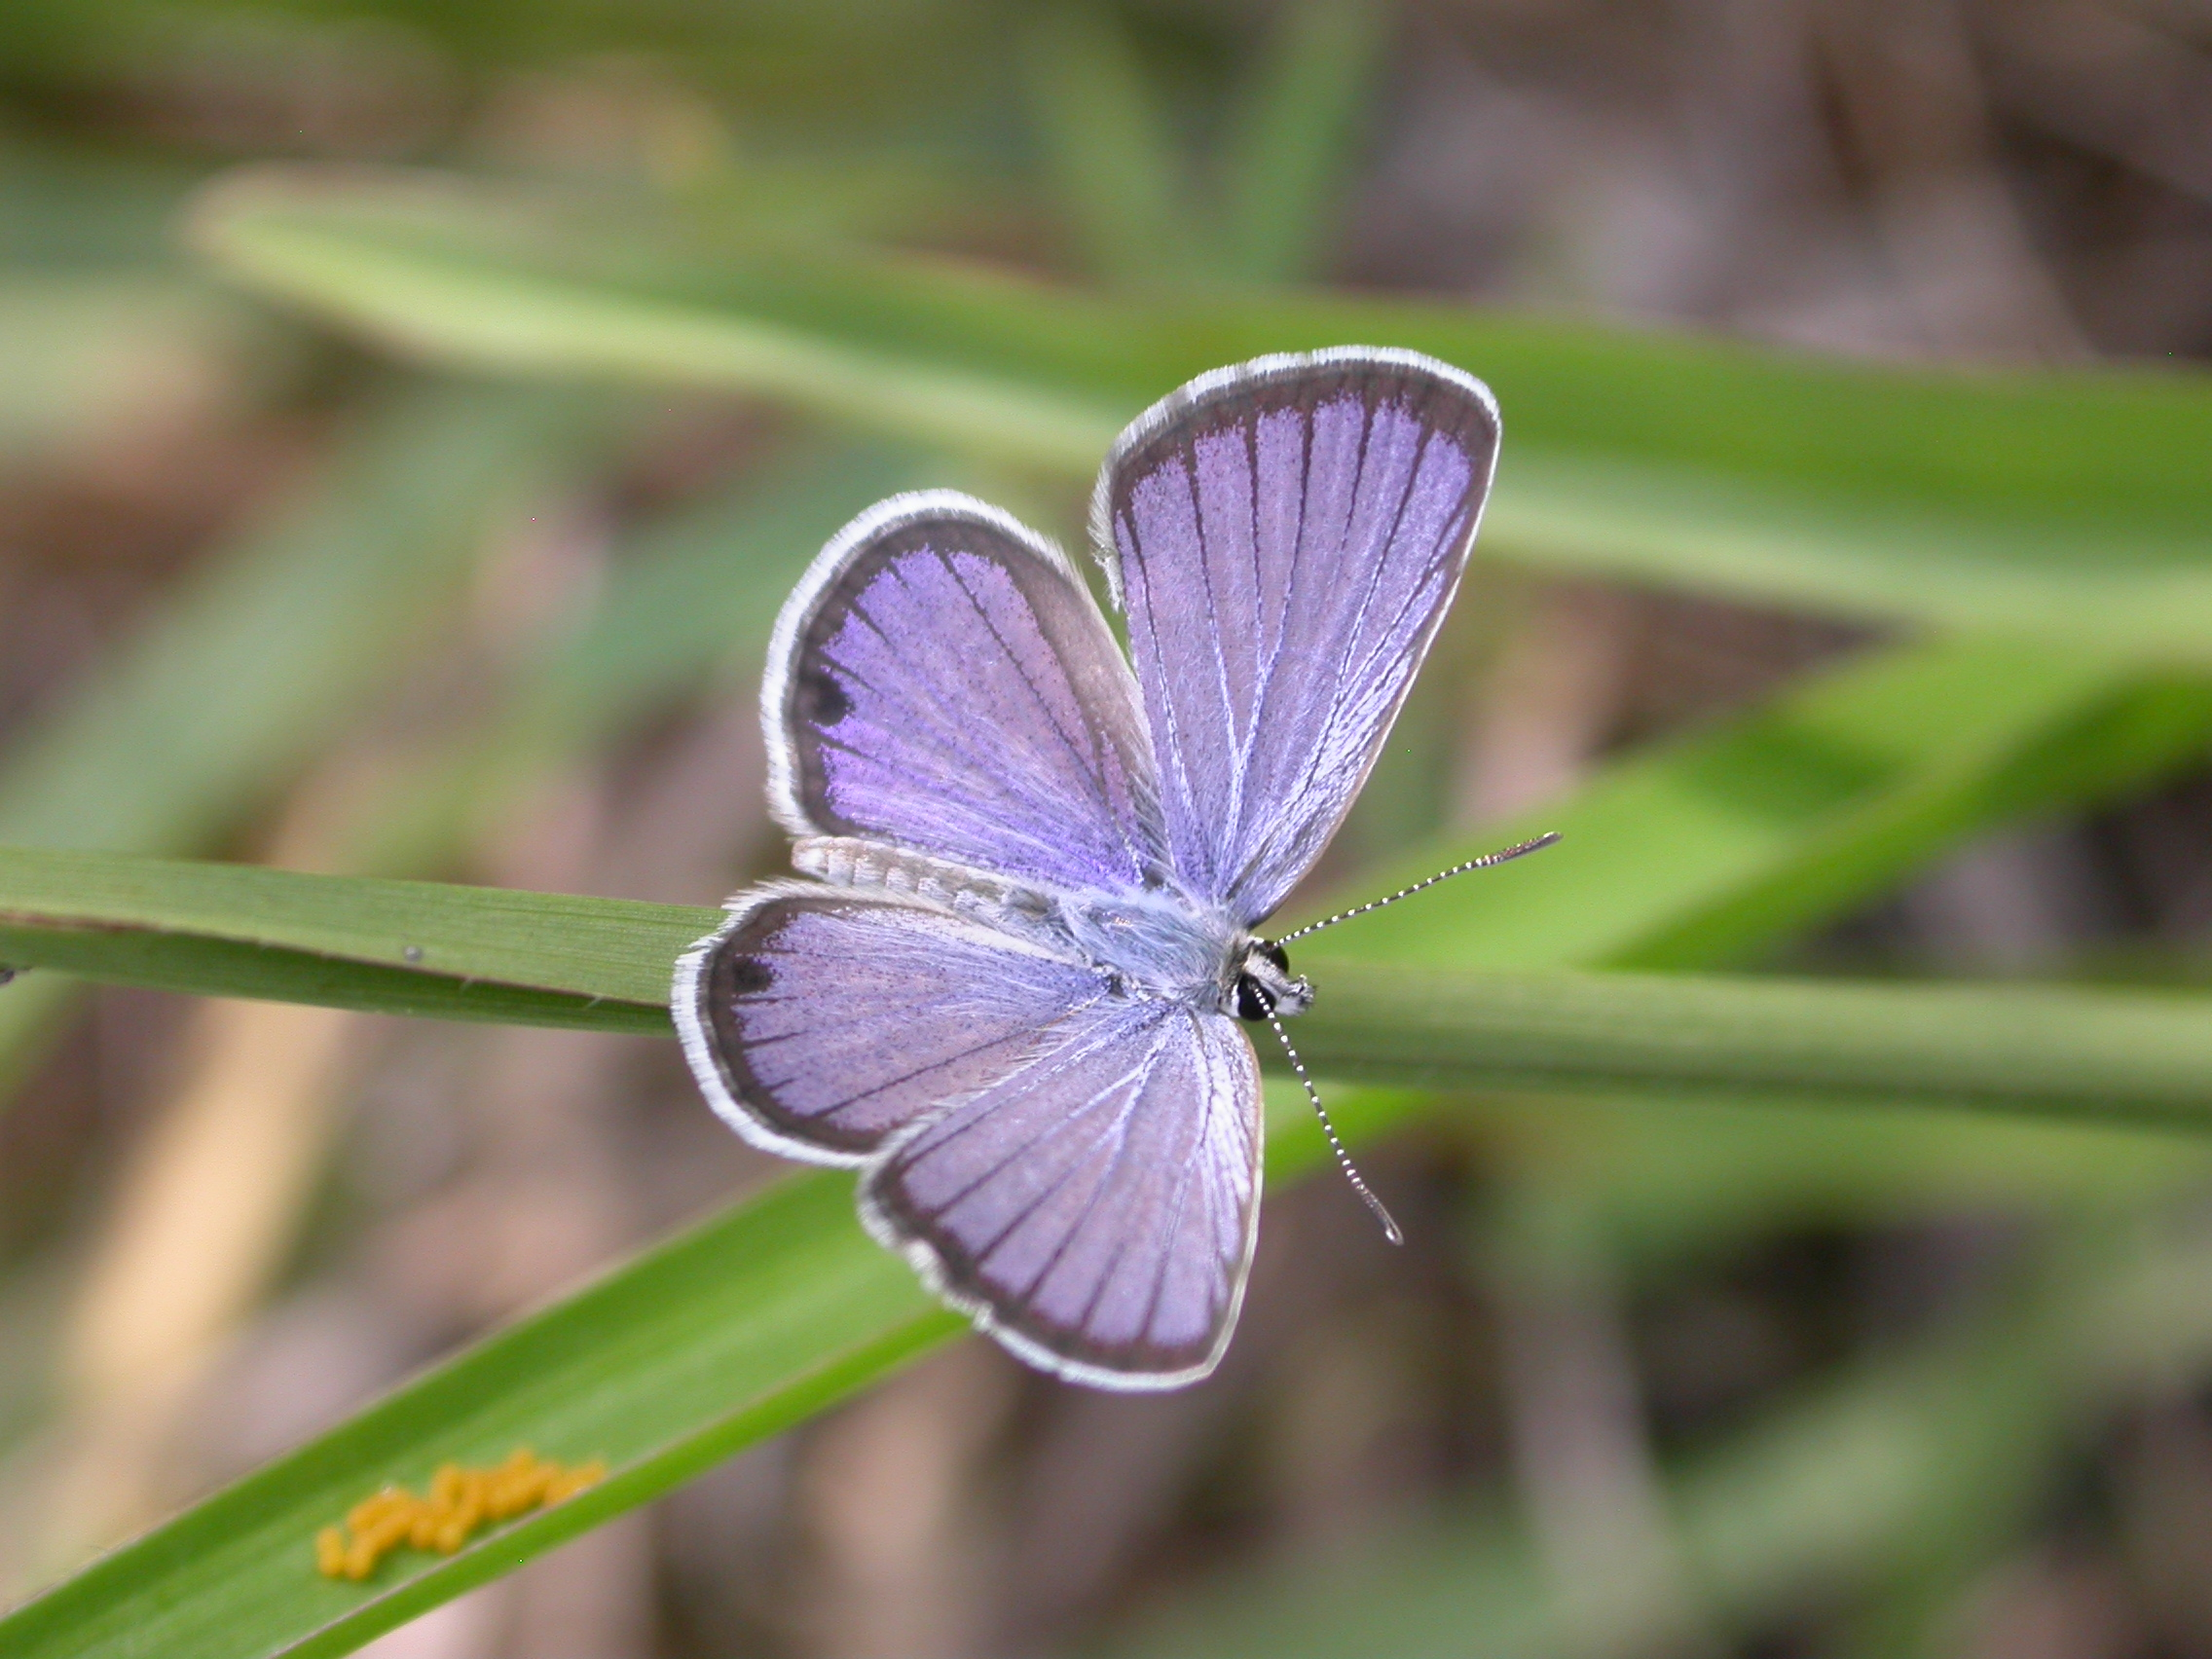 Ceraunus blue (Hemiargus ceraunus) are commonly seen in sunny habitats, including roadsides, scrubs and open grassy woodlands.